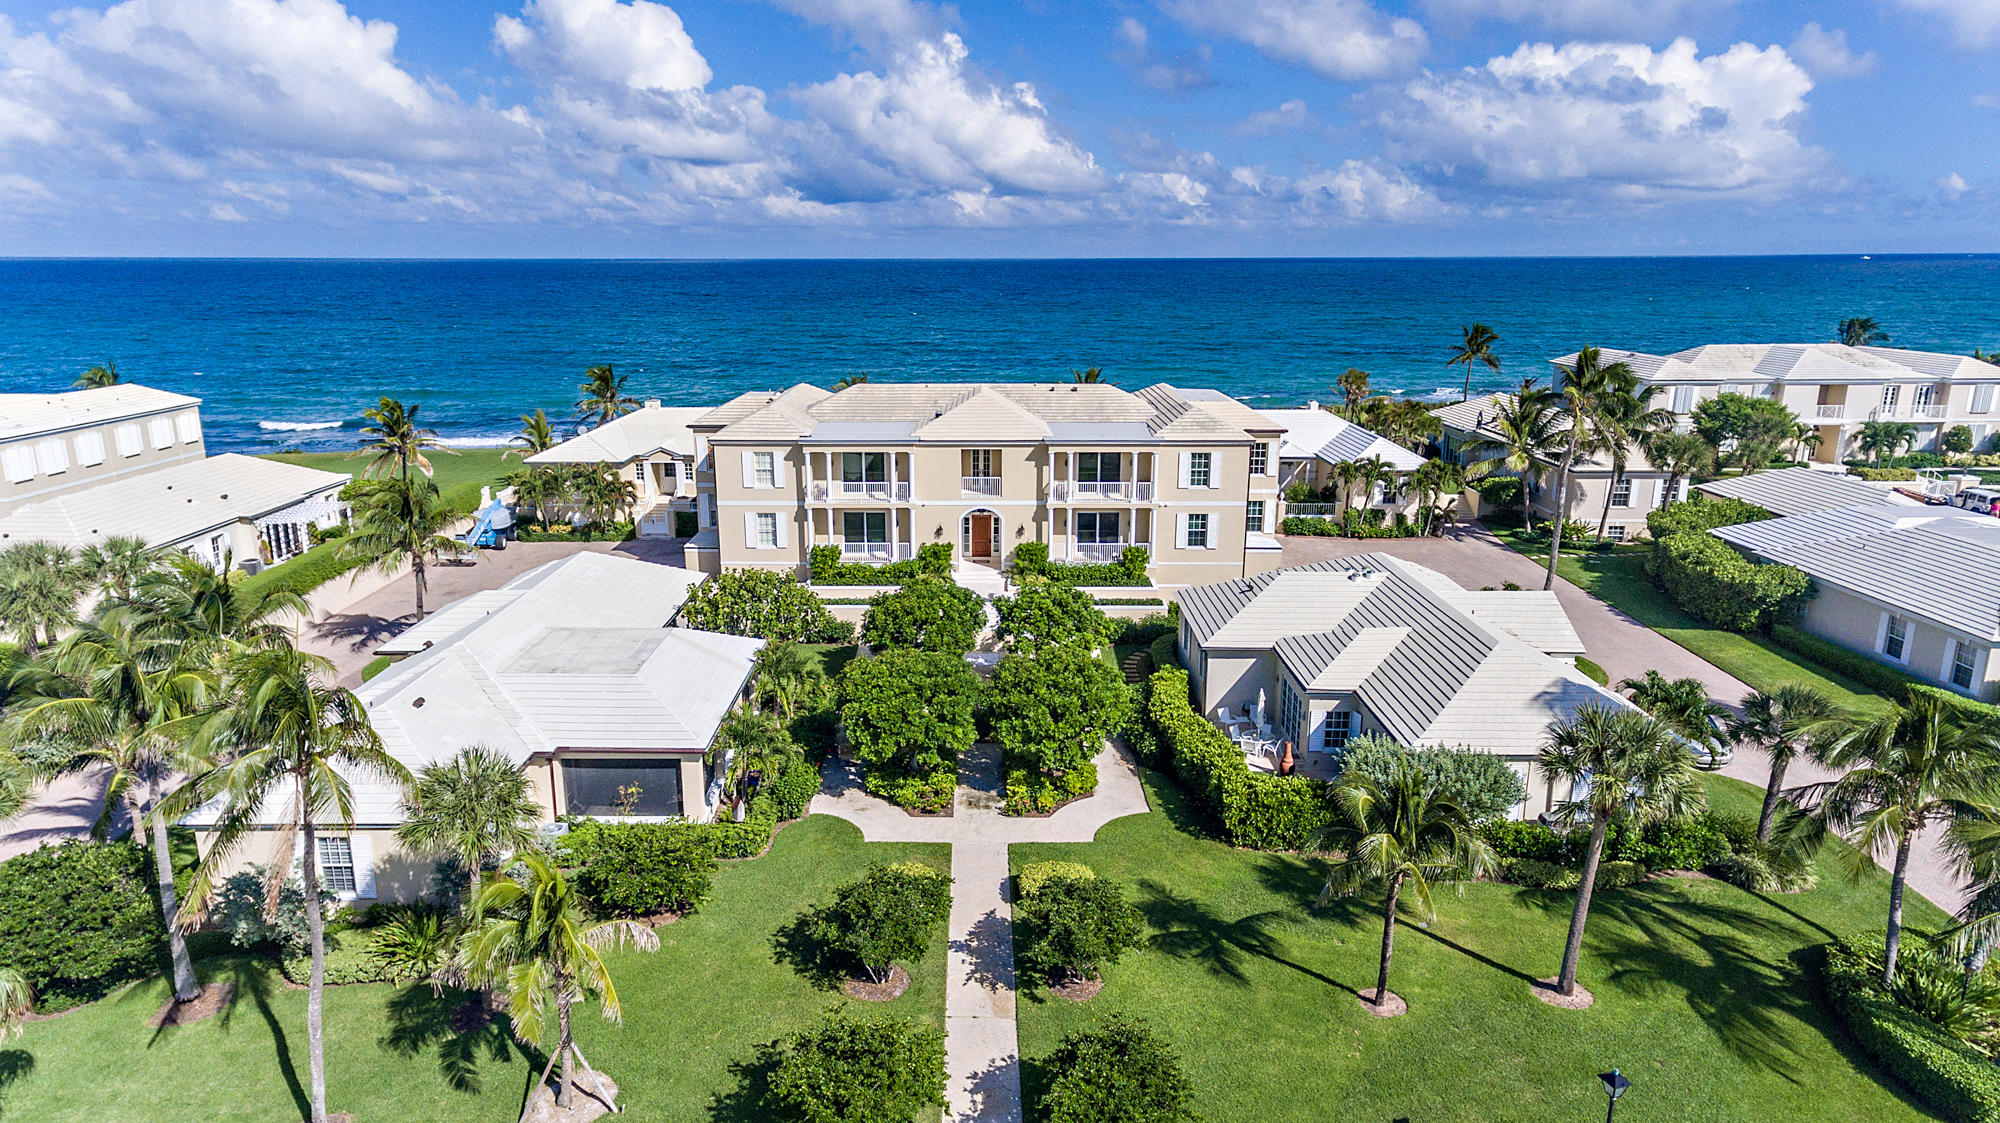 11354 Turtle Beach Road 5, North Palm Beach, Florida 33408, 4 Bedrooms Bedrooms, ,4 BathroomsBathrooms,A,Condominium,Turtle Beach,RX-10477550